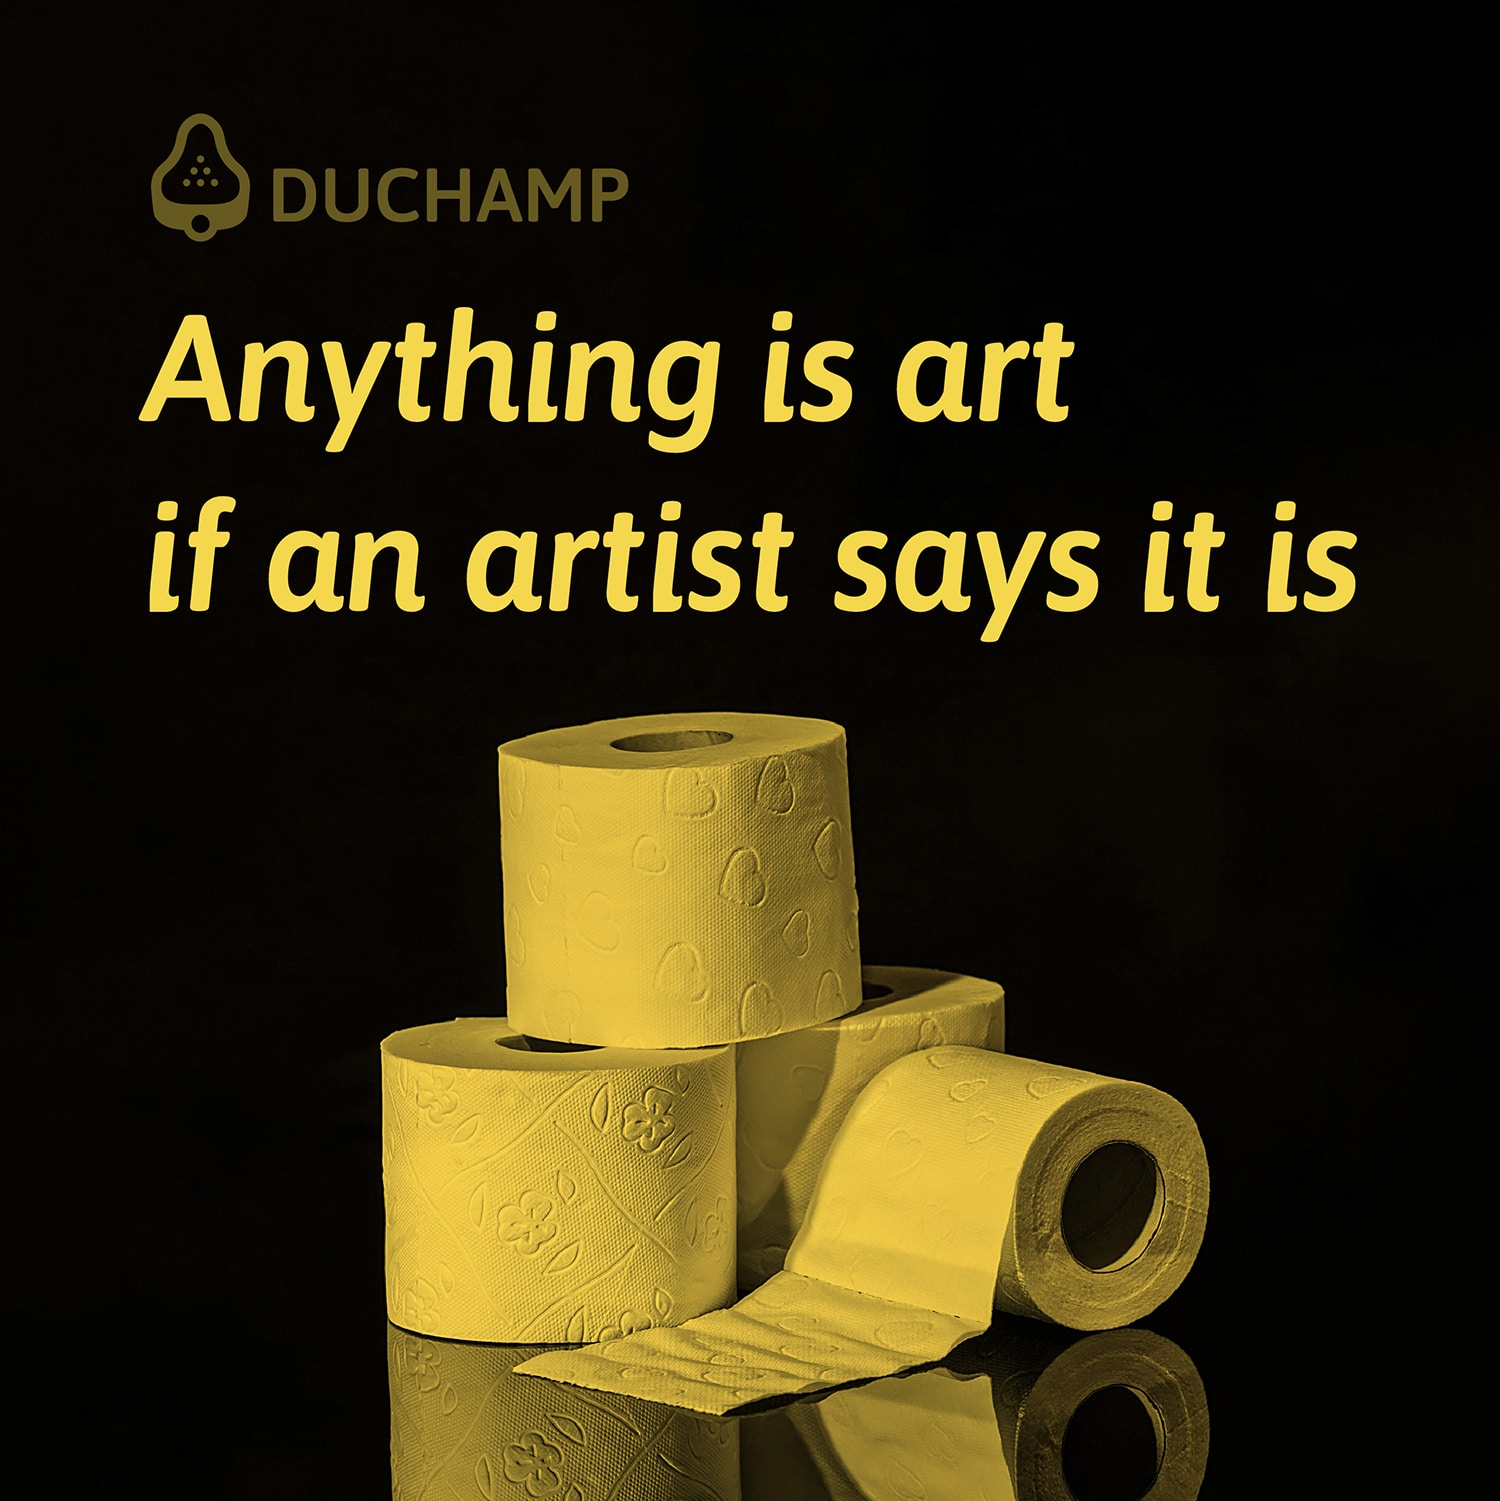 Anything is art